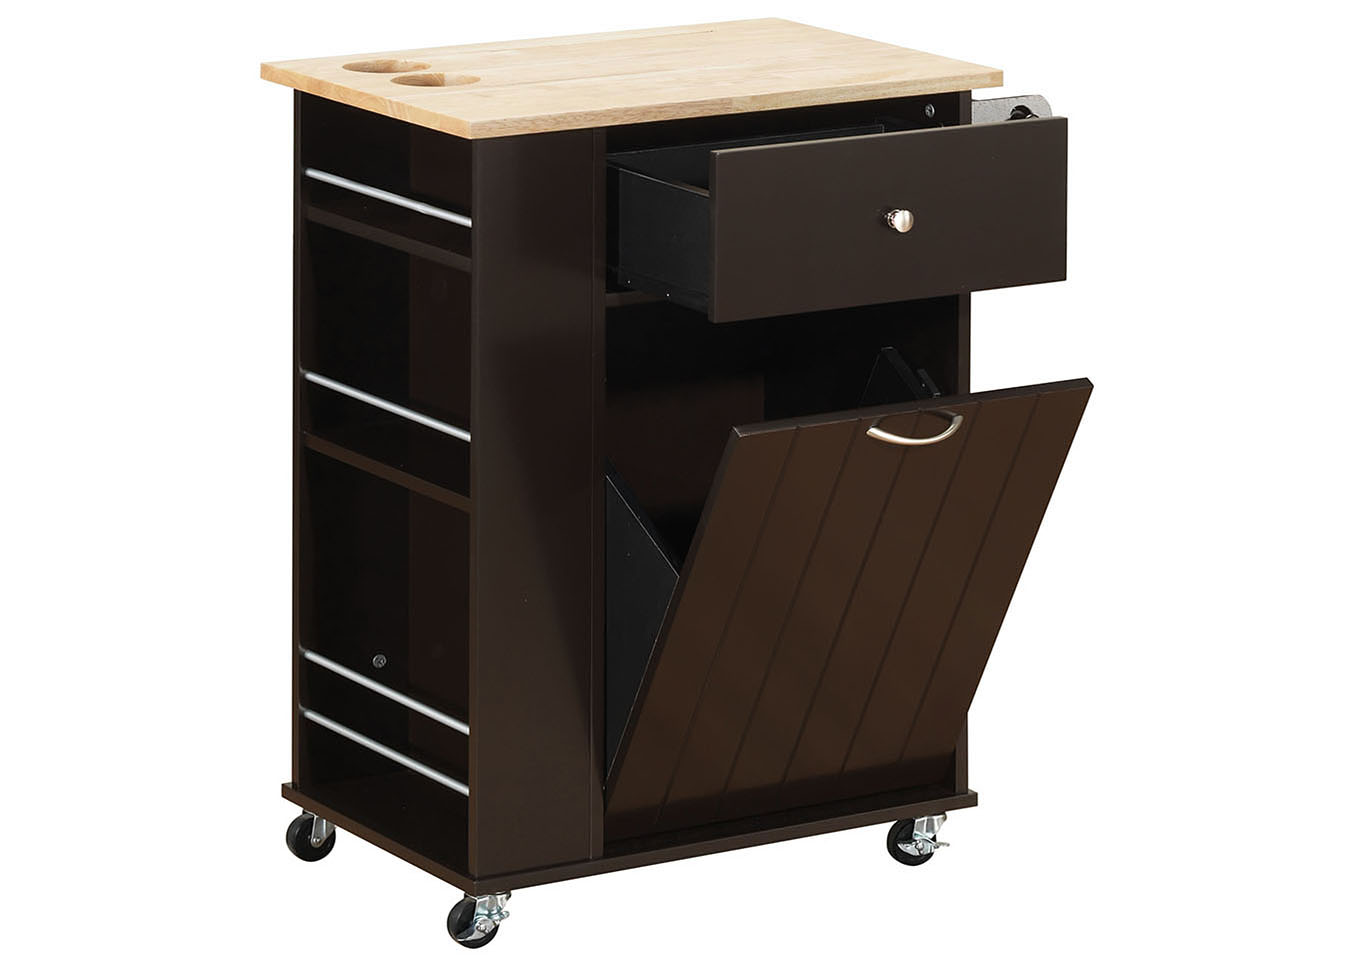 Zina Natural & Wenge Kitchen Cart,Acme